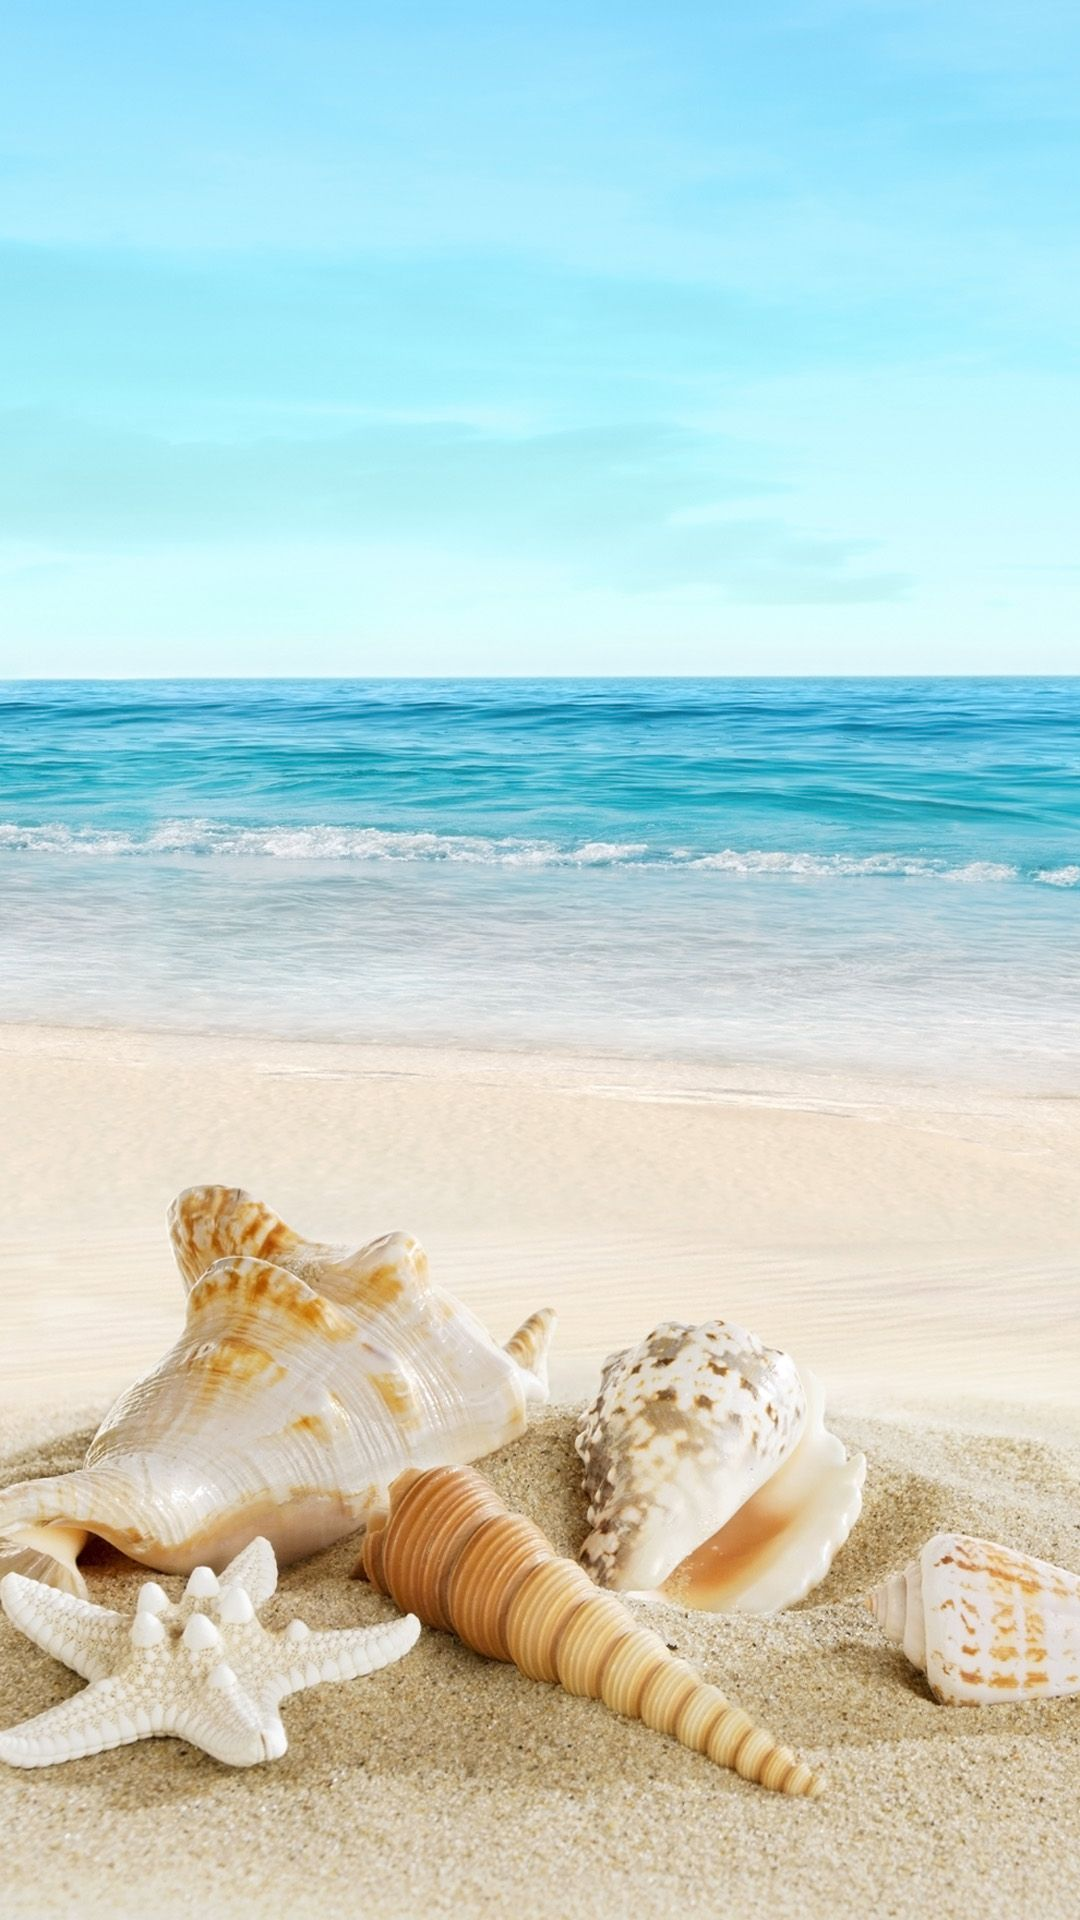 Nature sunny sea shell beach iphone wallpaper good pictures